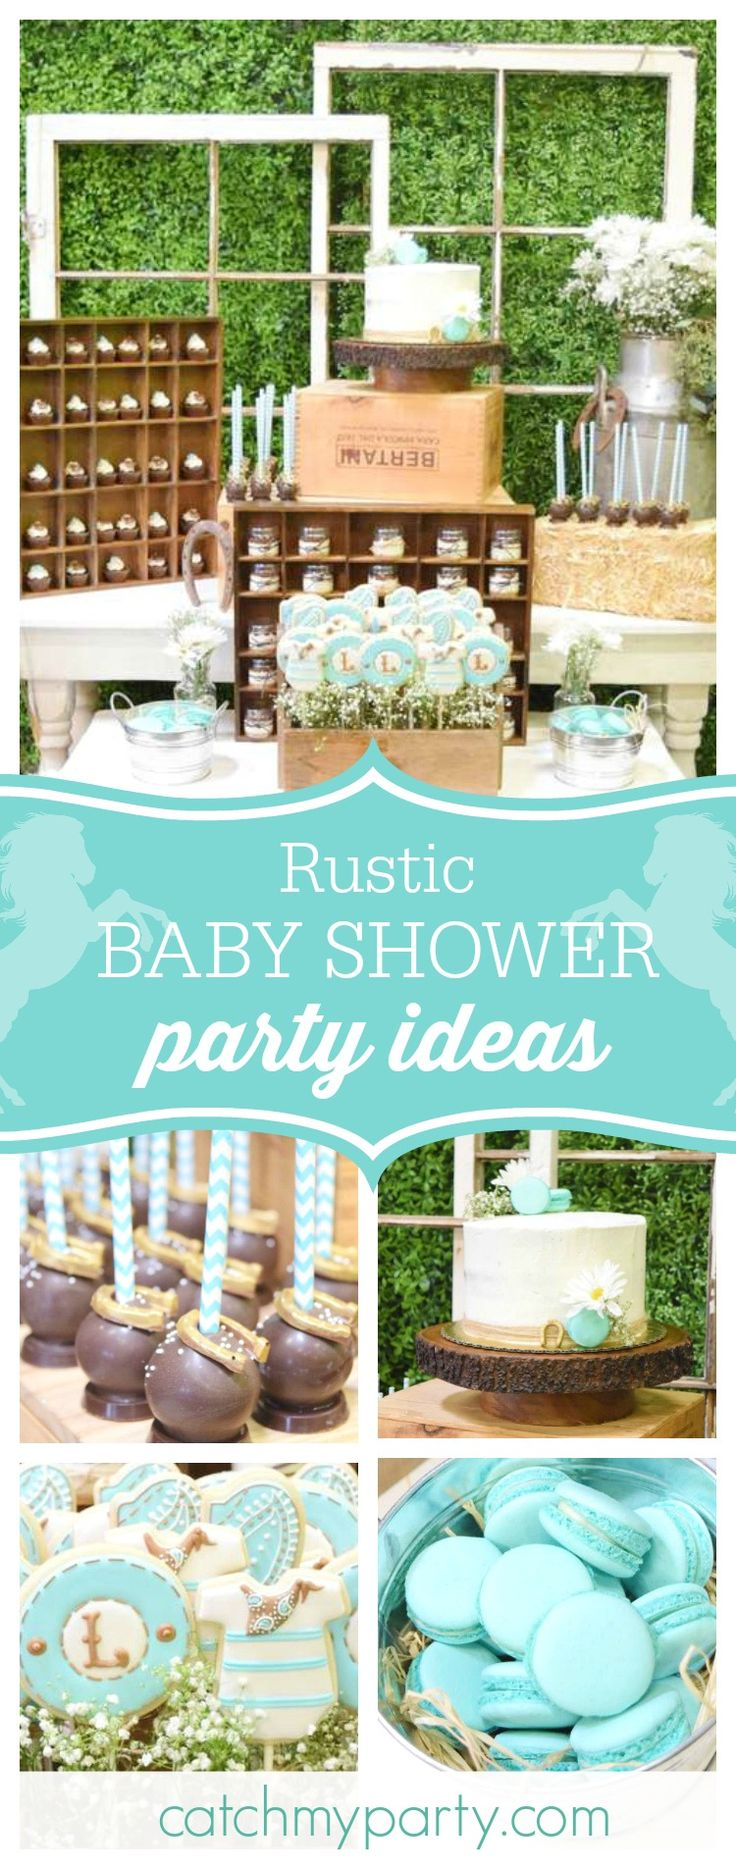 Don't miss this adorable rustic baby shower. The cake pops decorated with horse shoes are fantastic!! See more party ideas and share yours at CatchMyParty.com